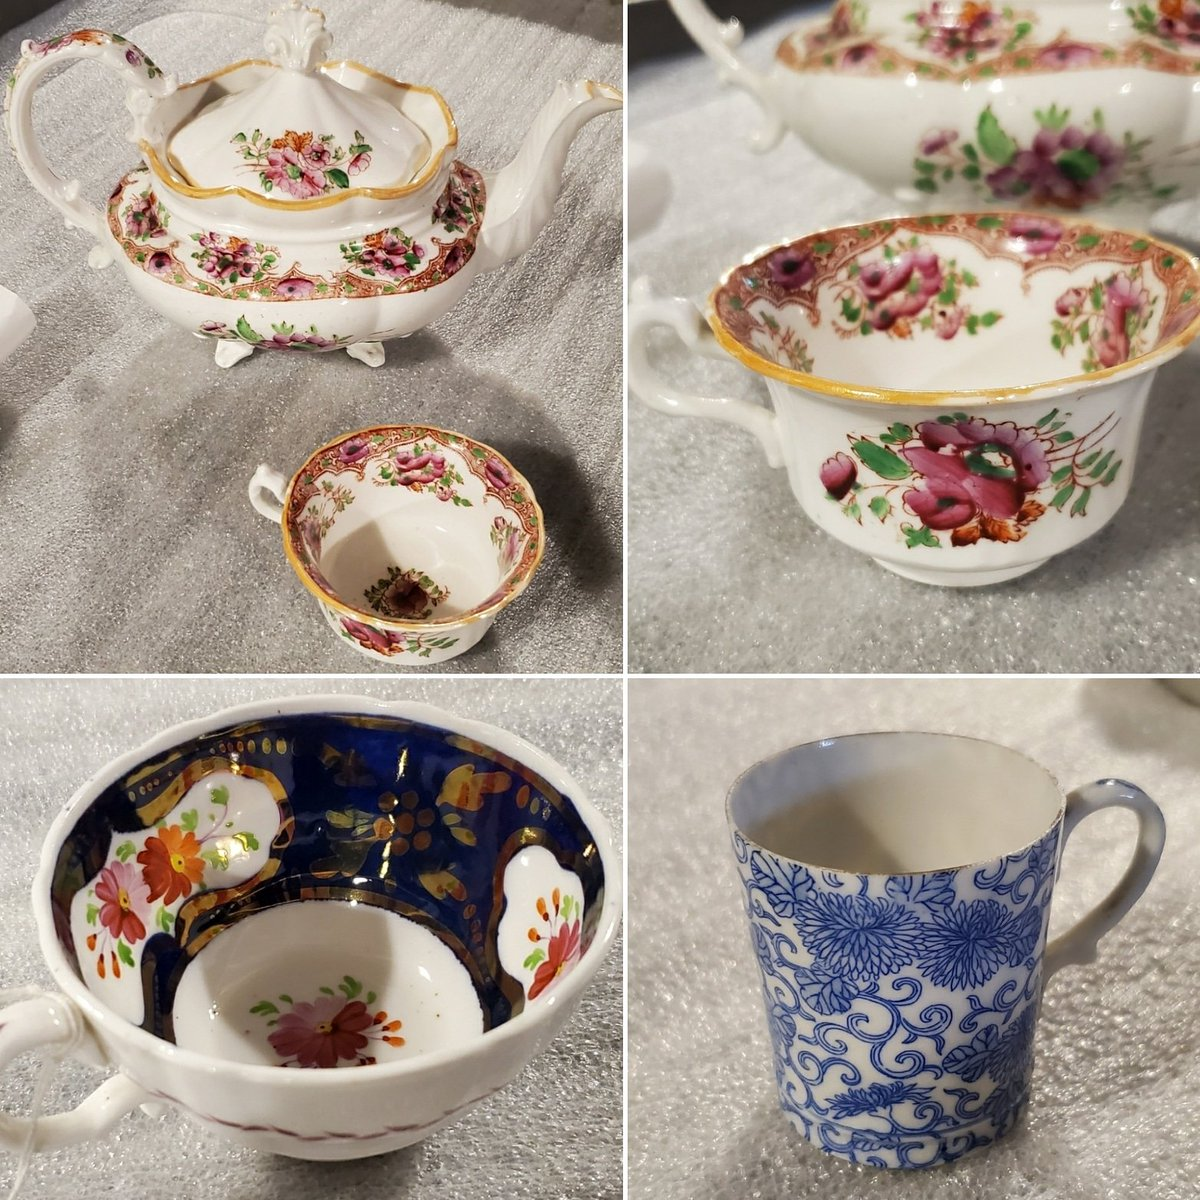 It's #NationalTeaDay! Enjoy these tea cups from our collection while you have a cuppa!  #wethersfield #oldwethersfield #itsteatime #cuppa #teapic.twitter.com/YfqvS52k6l